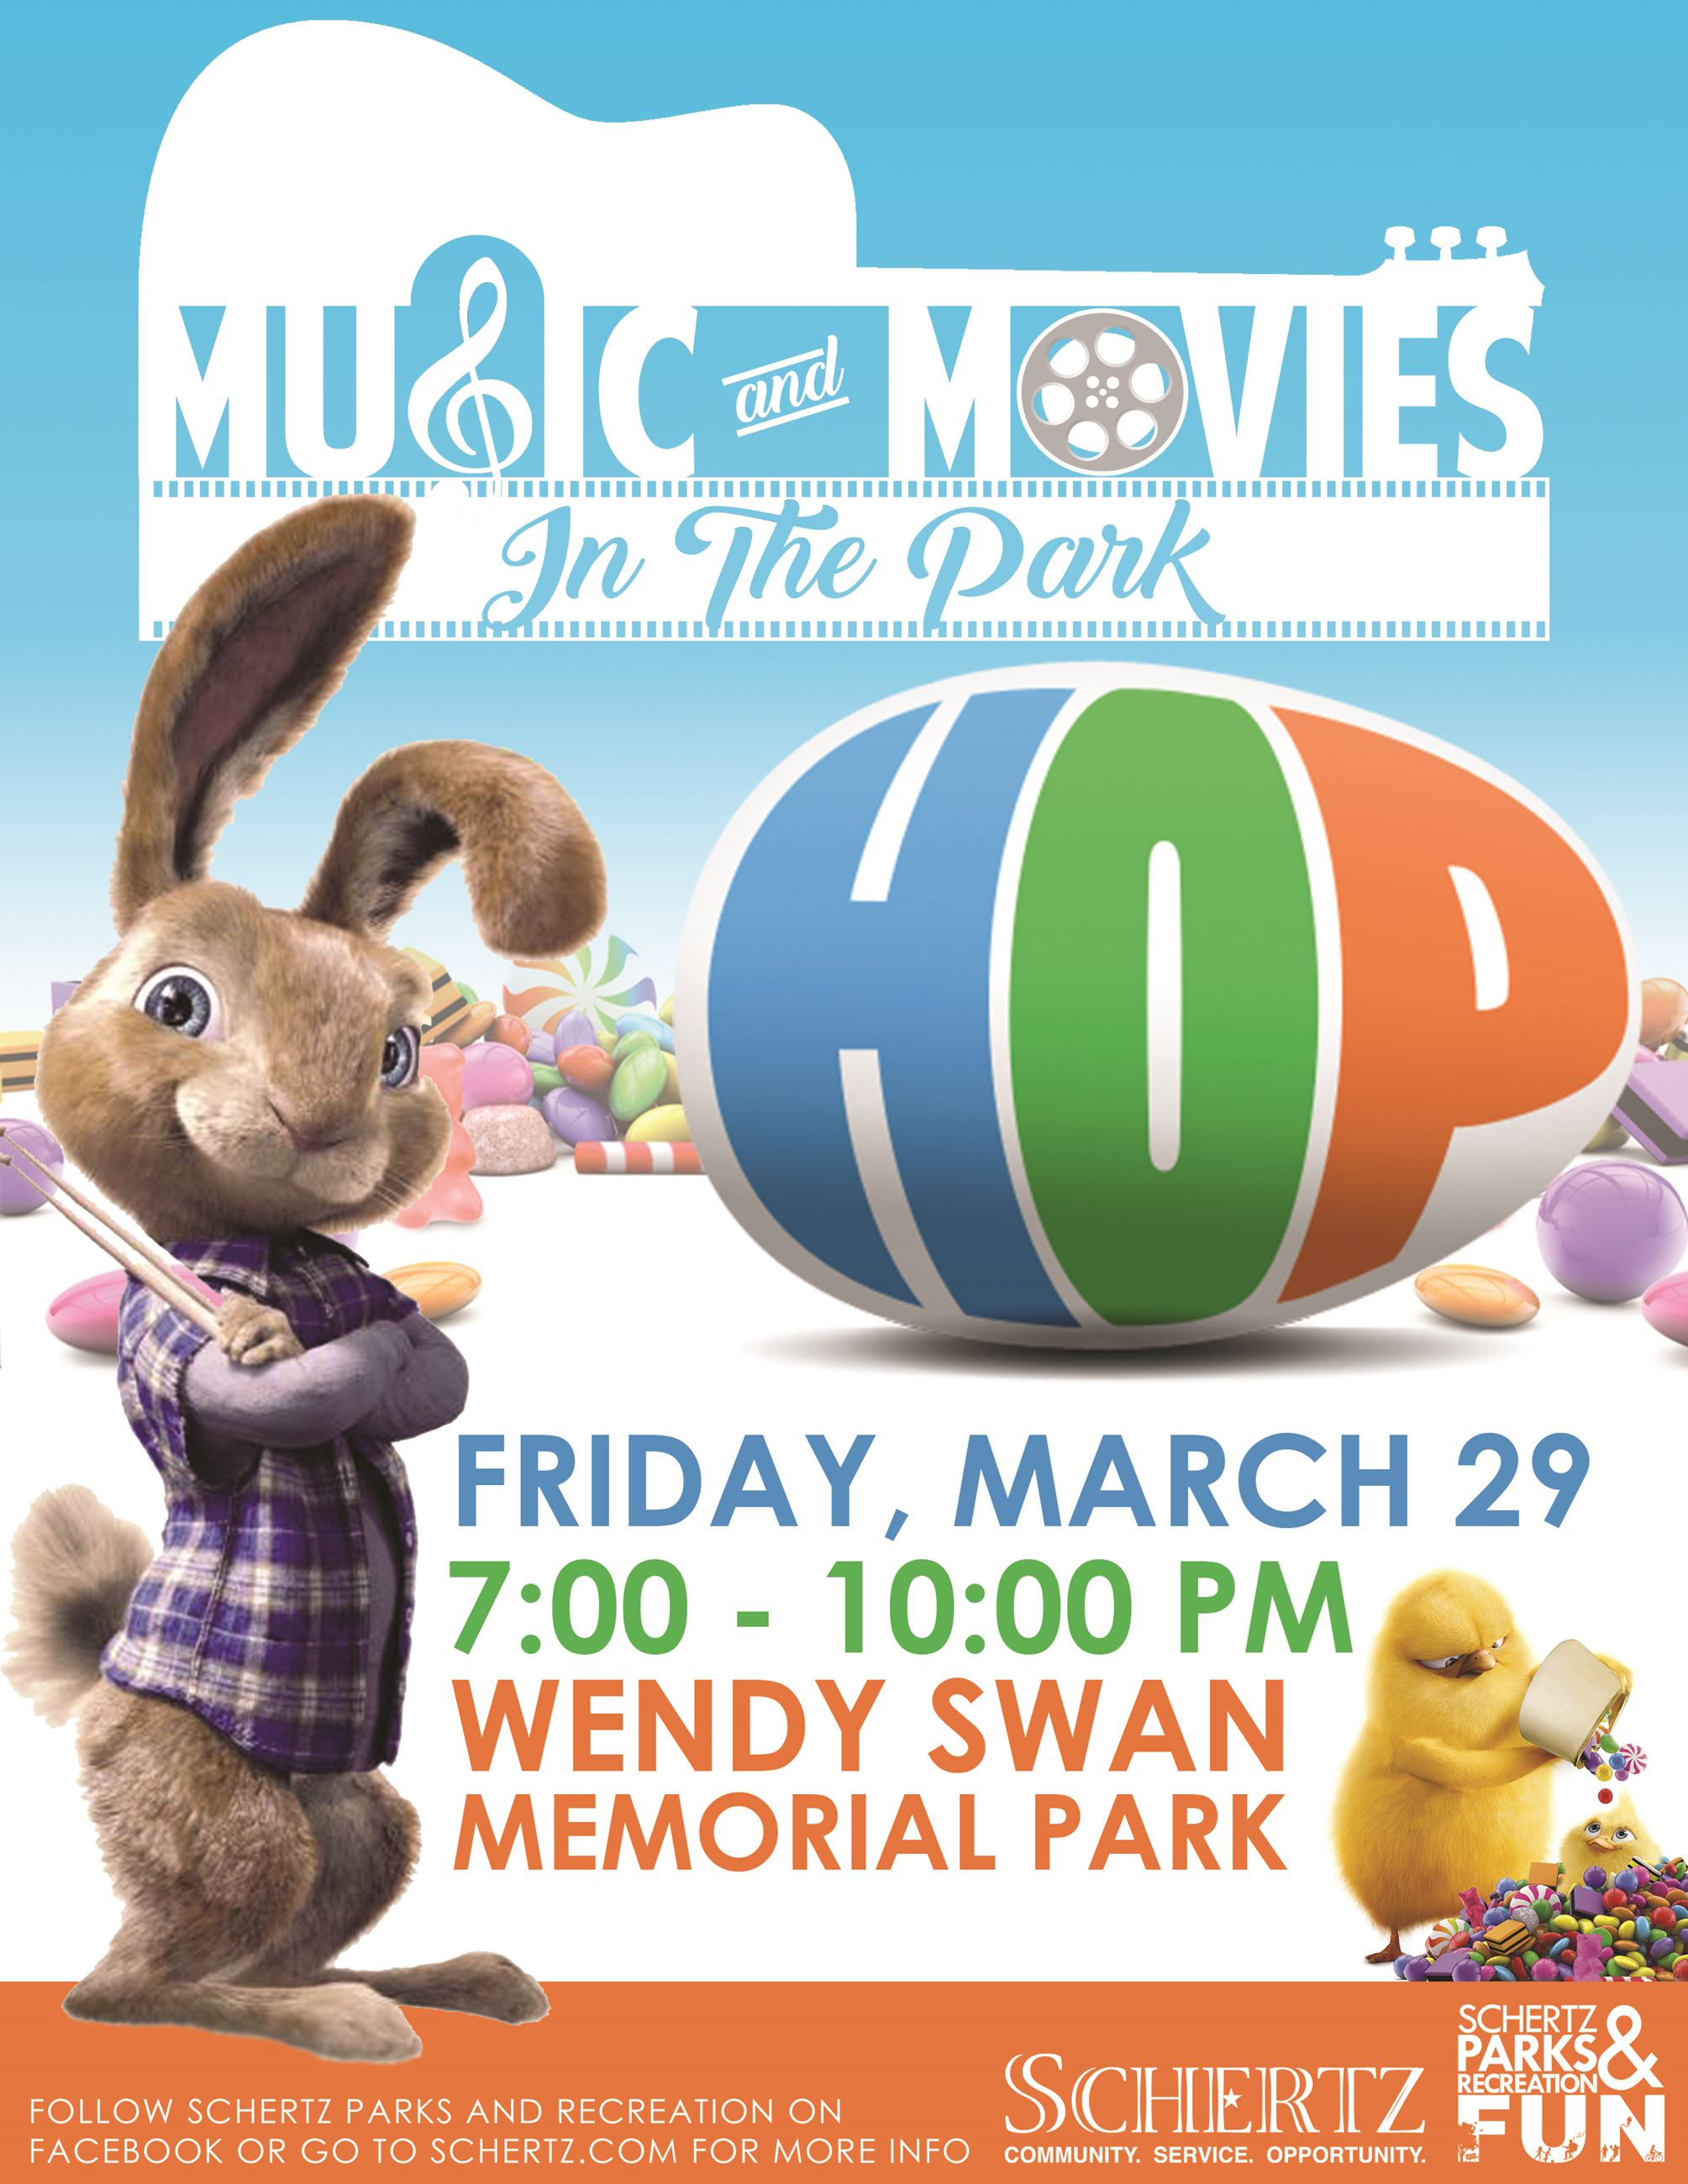 HOP Movie in the Park